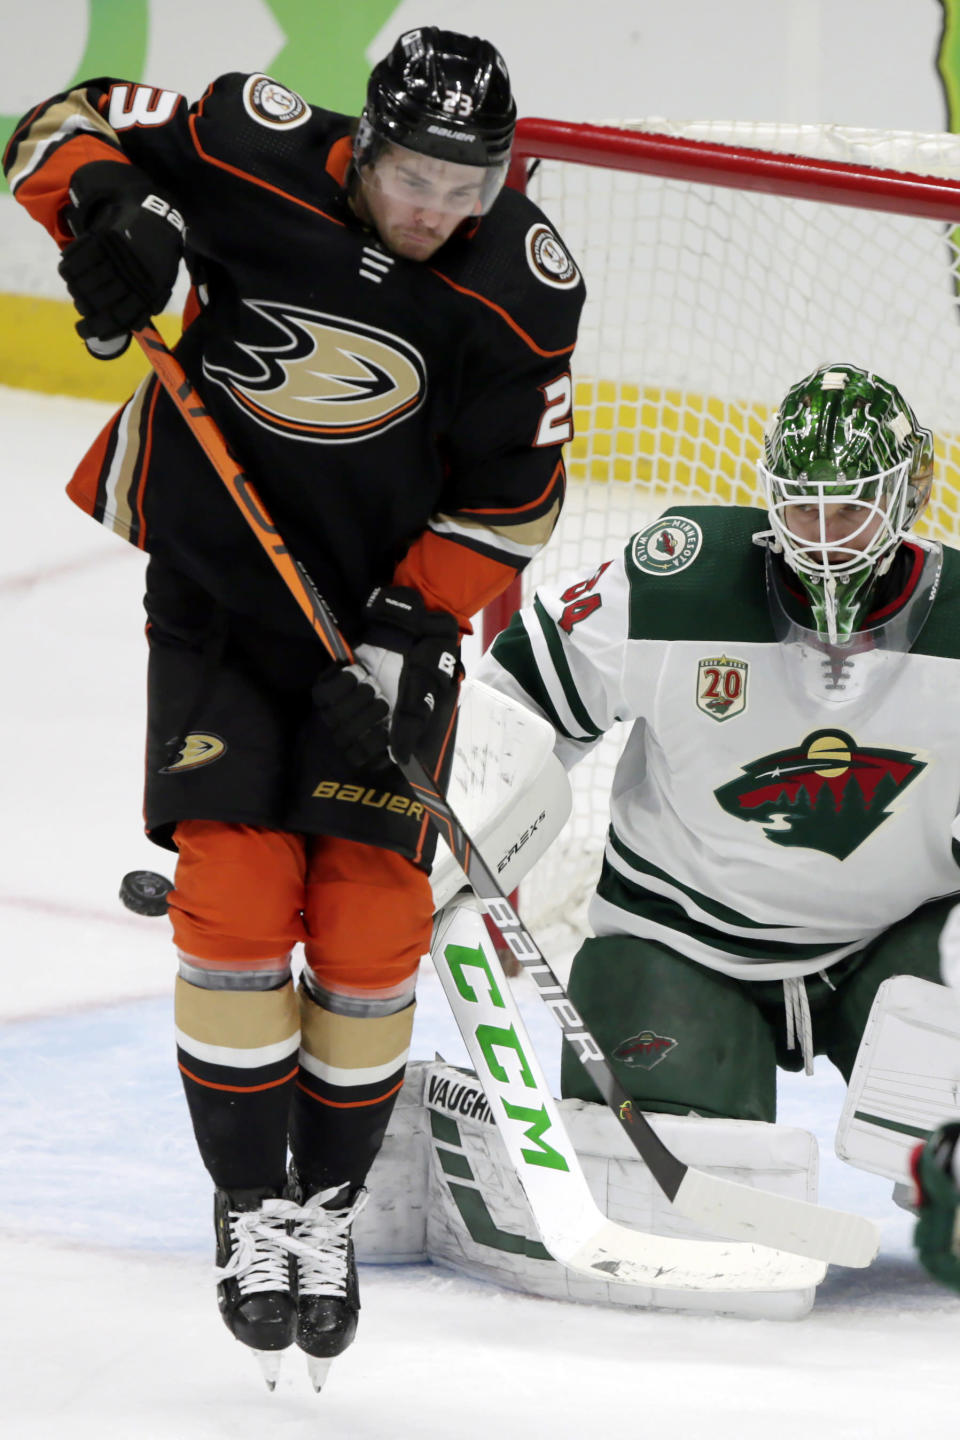 Anaheim Ducks center Sam Steel, left, shields Minnesota Wild goaltender Kaapo Kahkonen as the puck sails wide of the goal during the first period of an NHL hockey game in Anaheim, Calif., Wednesday, Jan. 20, 2021. (AP Photo/Alex Gallardo)